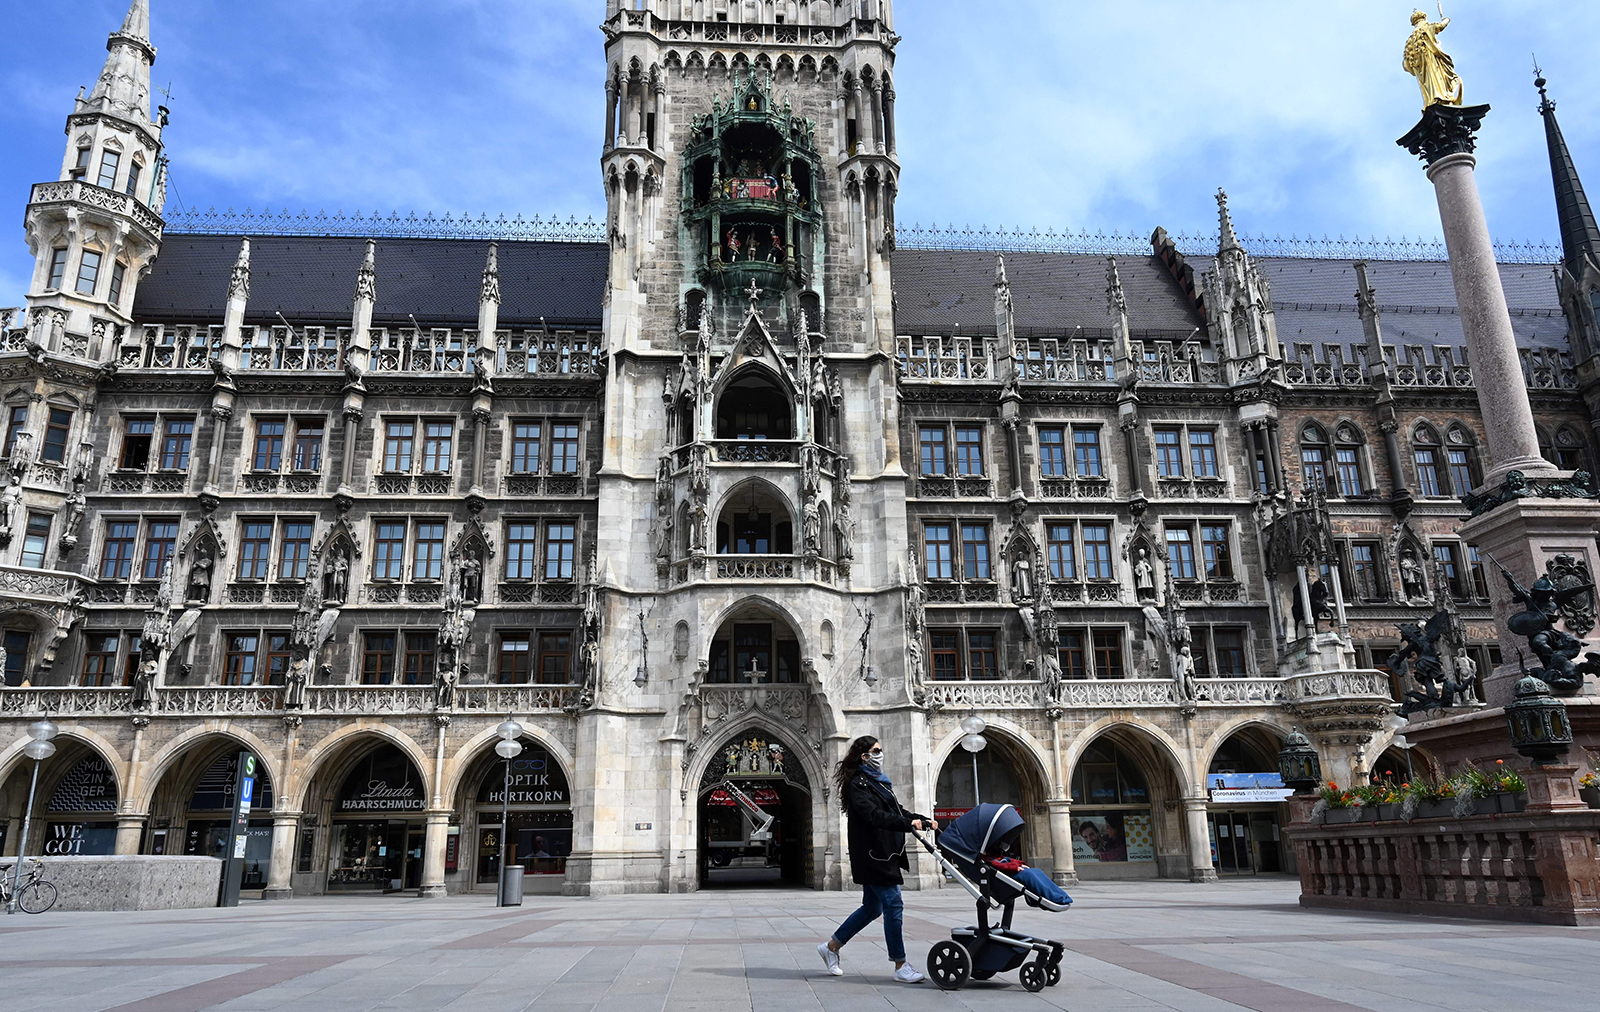 A woman pushing a stroller walks at the empty Marienplatz in Munich on April 21.